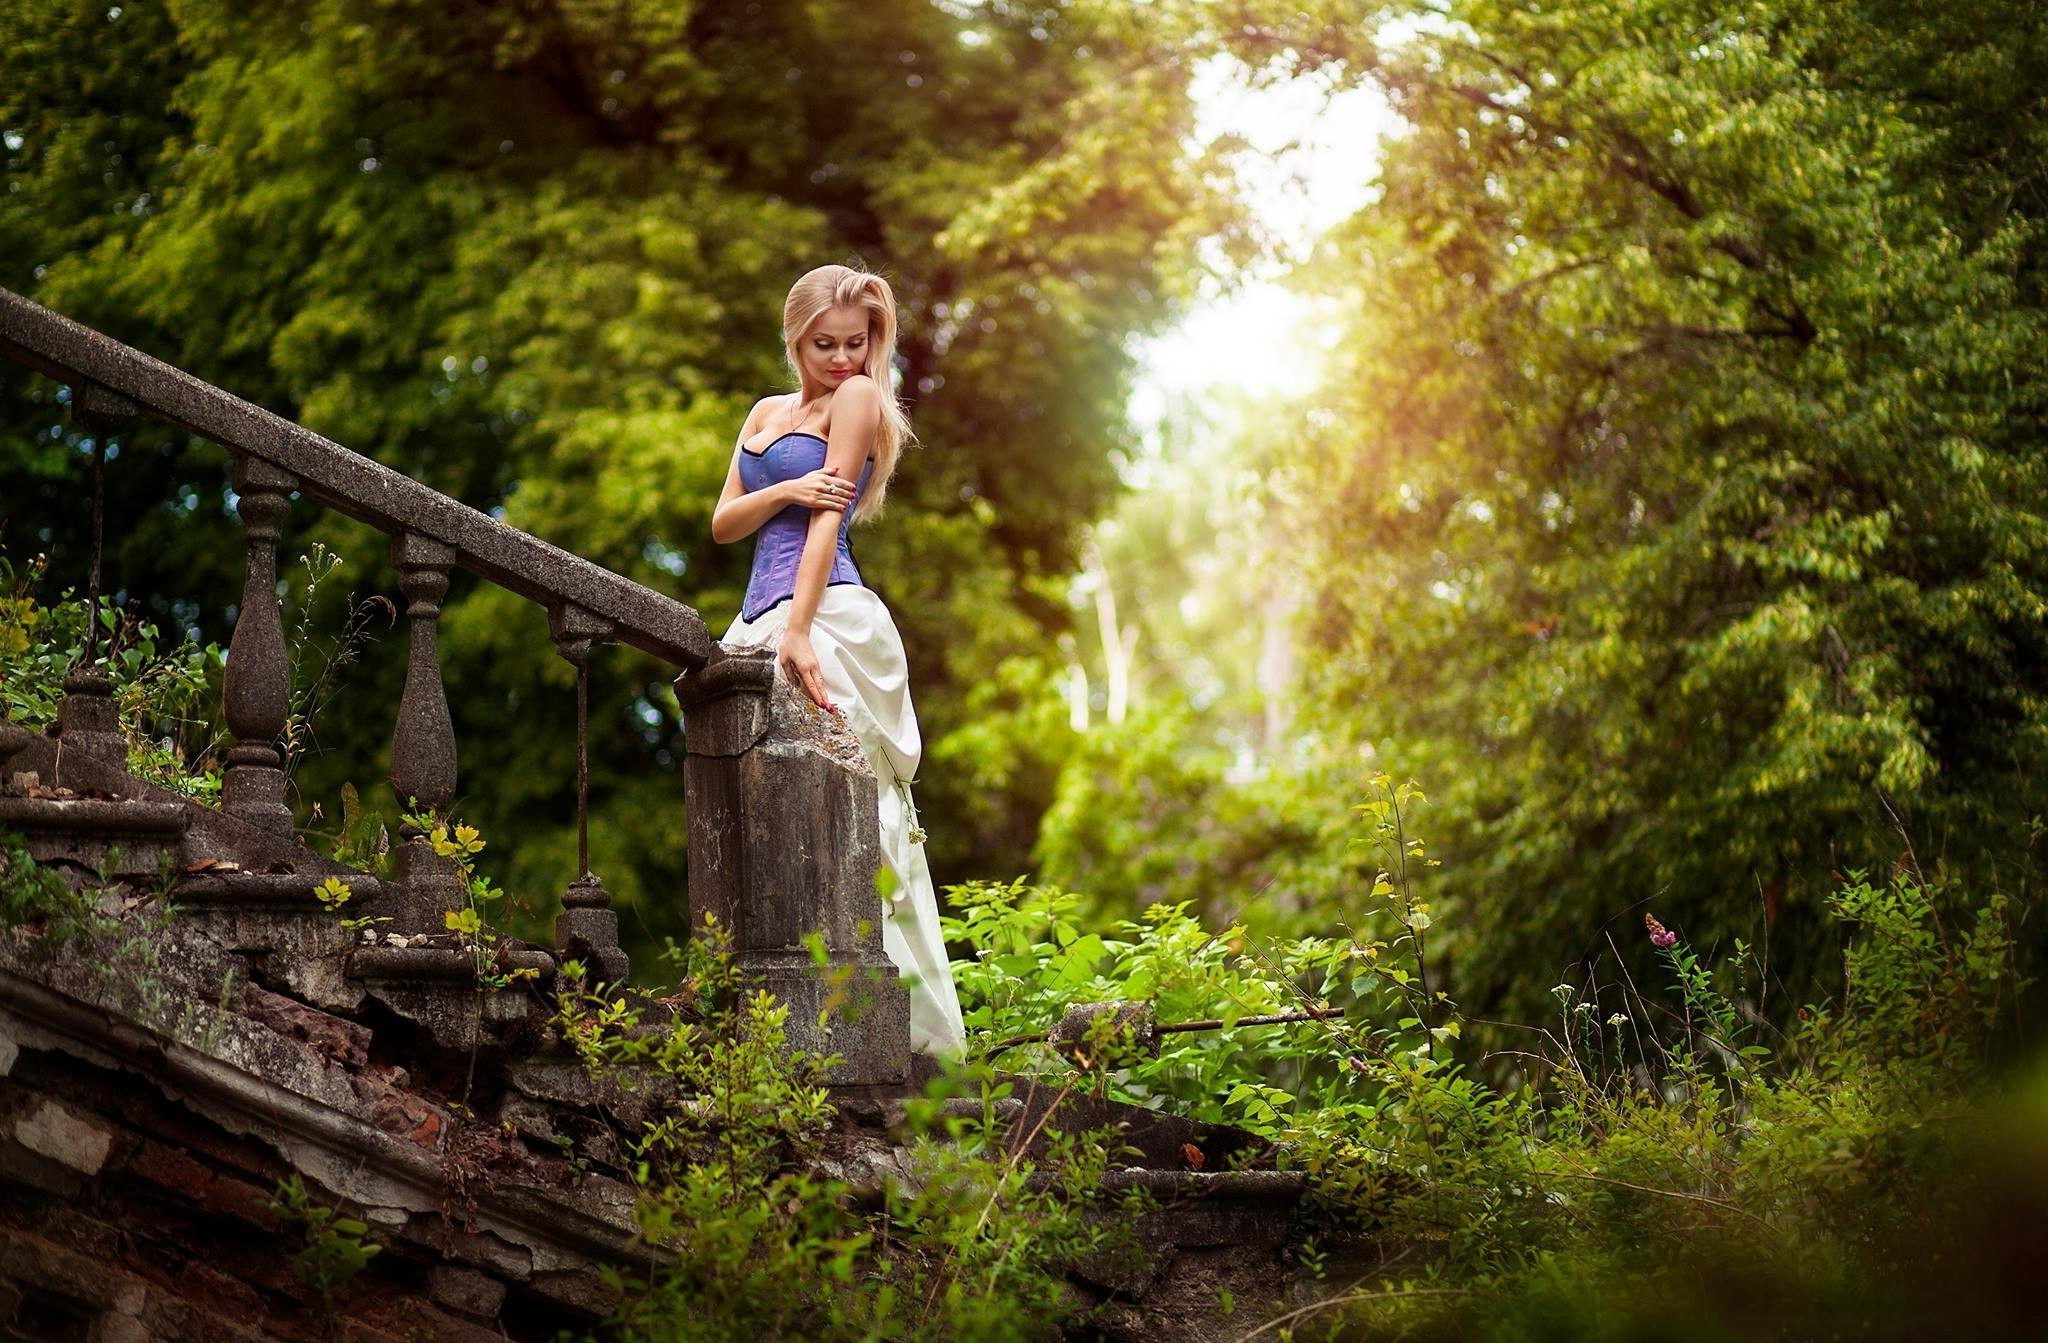 Real Hd Wallpapers 1080p Trees Stairs Women Outdoors Women Model Wallpapers Hd